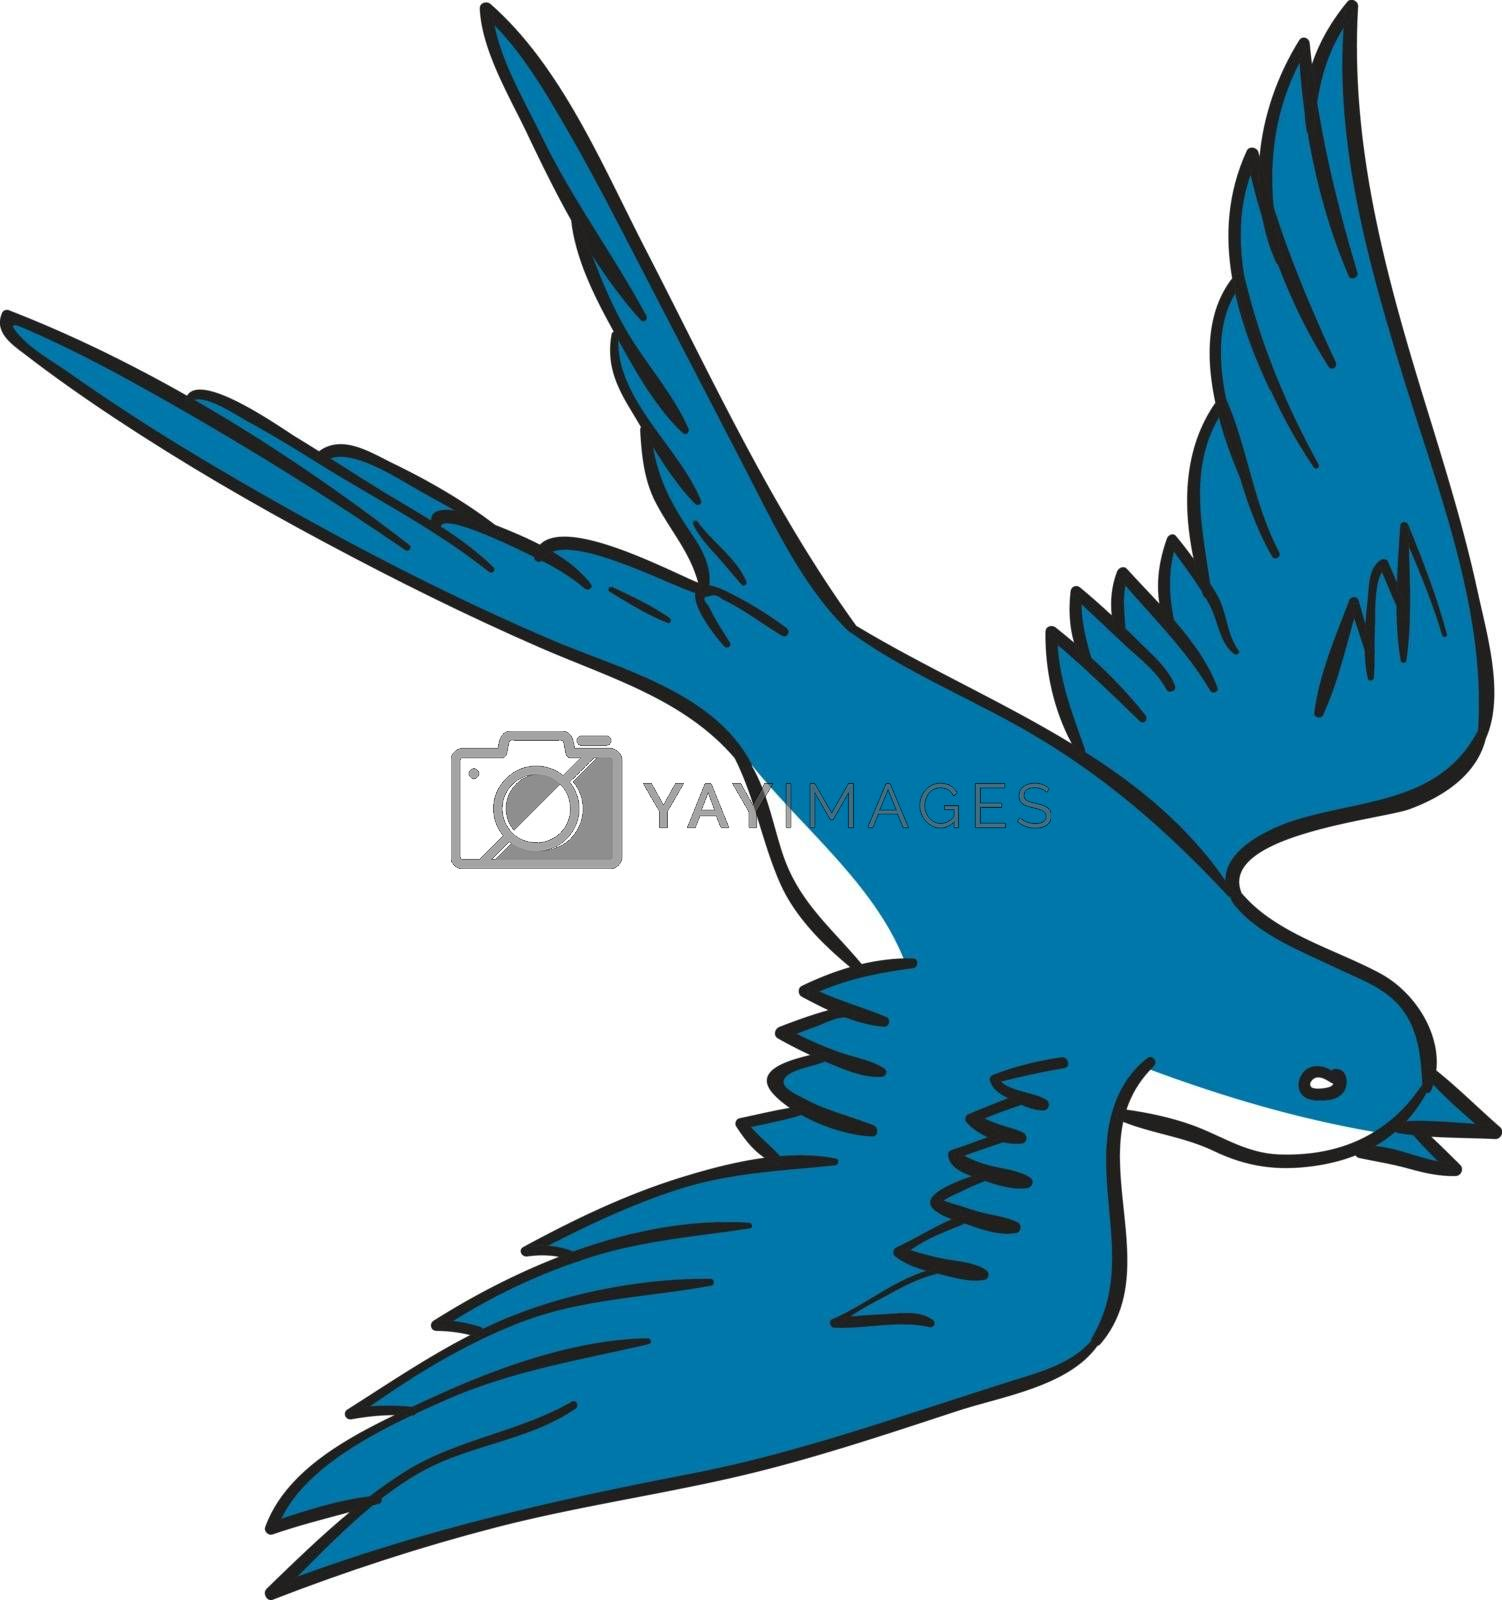 Drawing sketch style illustration of a swallow, a fast flying passerine bird in the family Hirundinidae, flying down viewed from the side set on isolated white background.